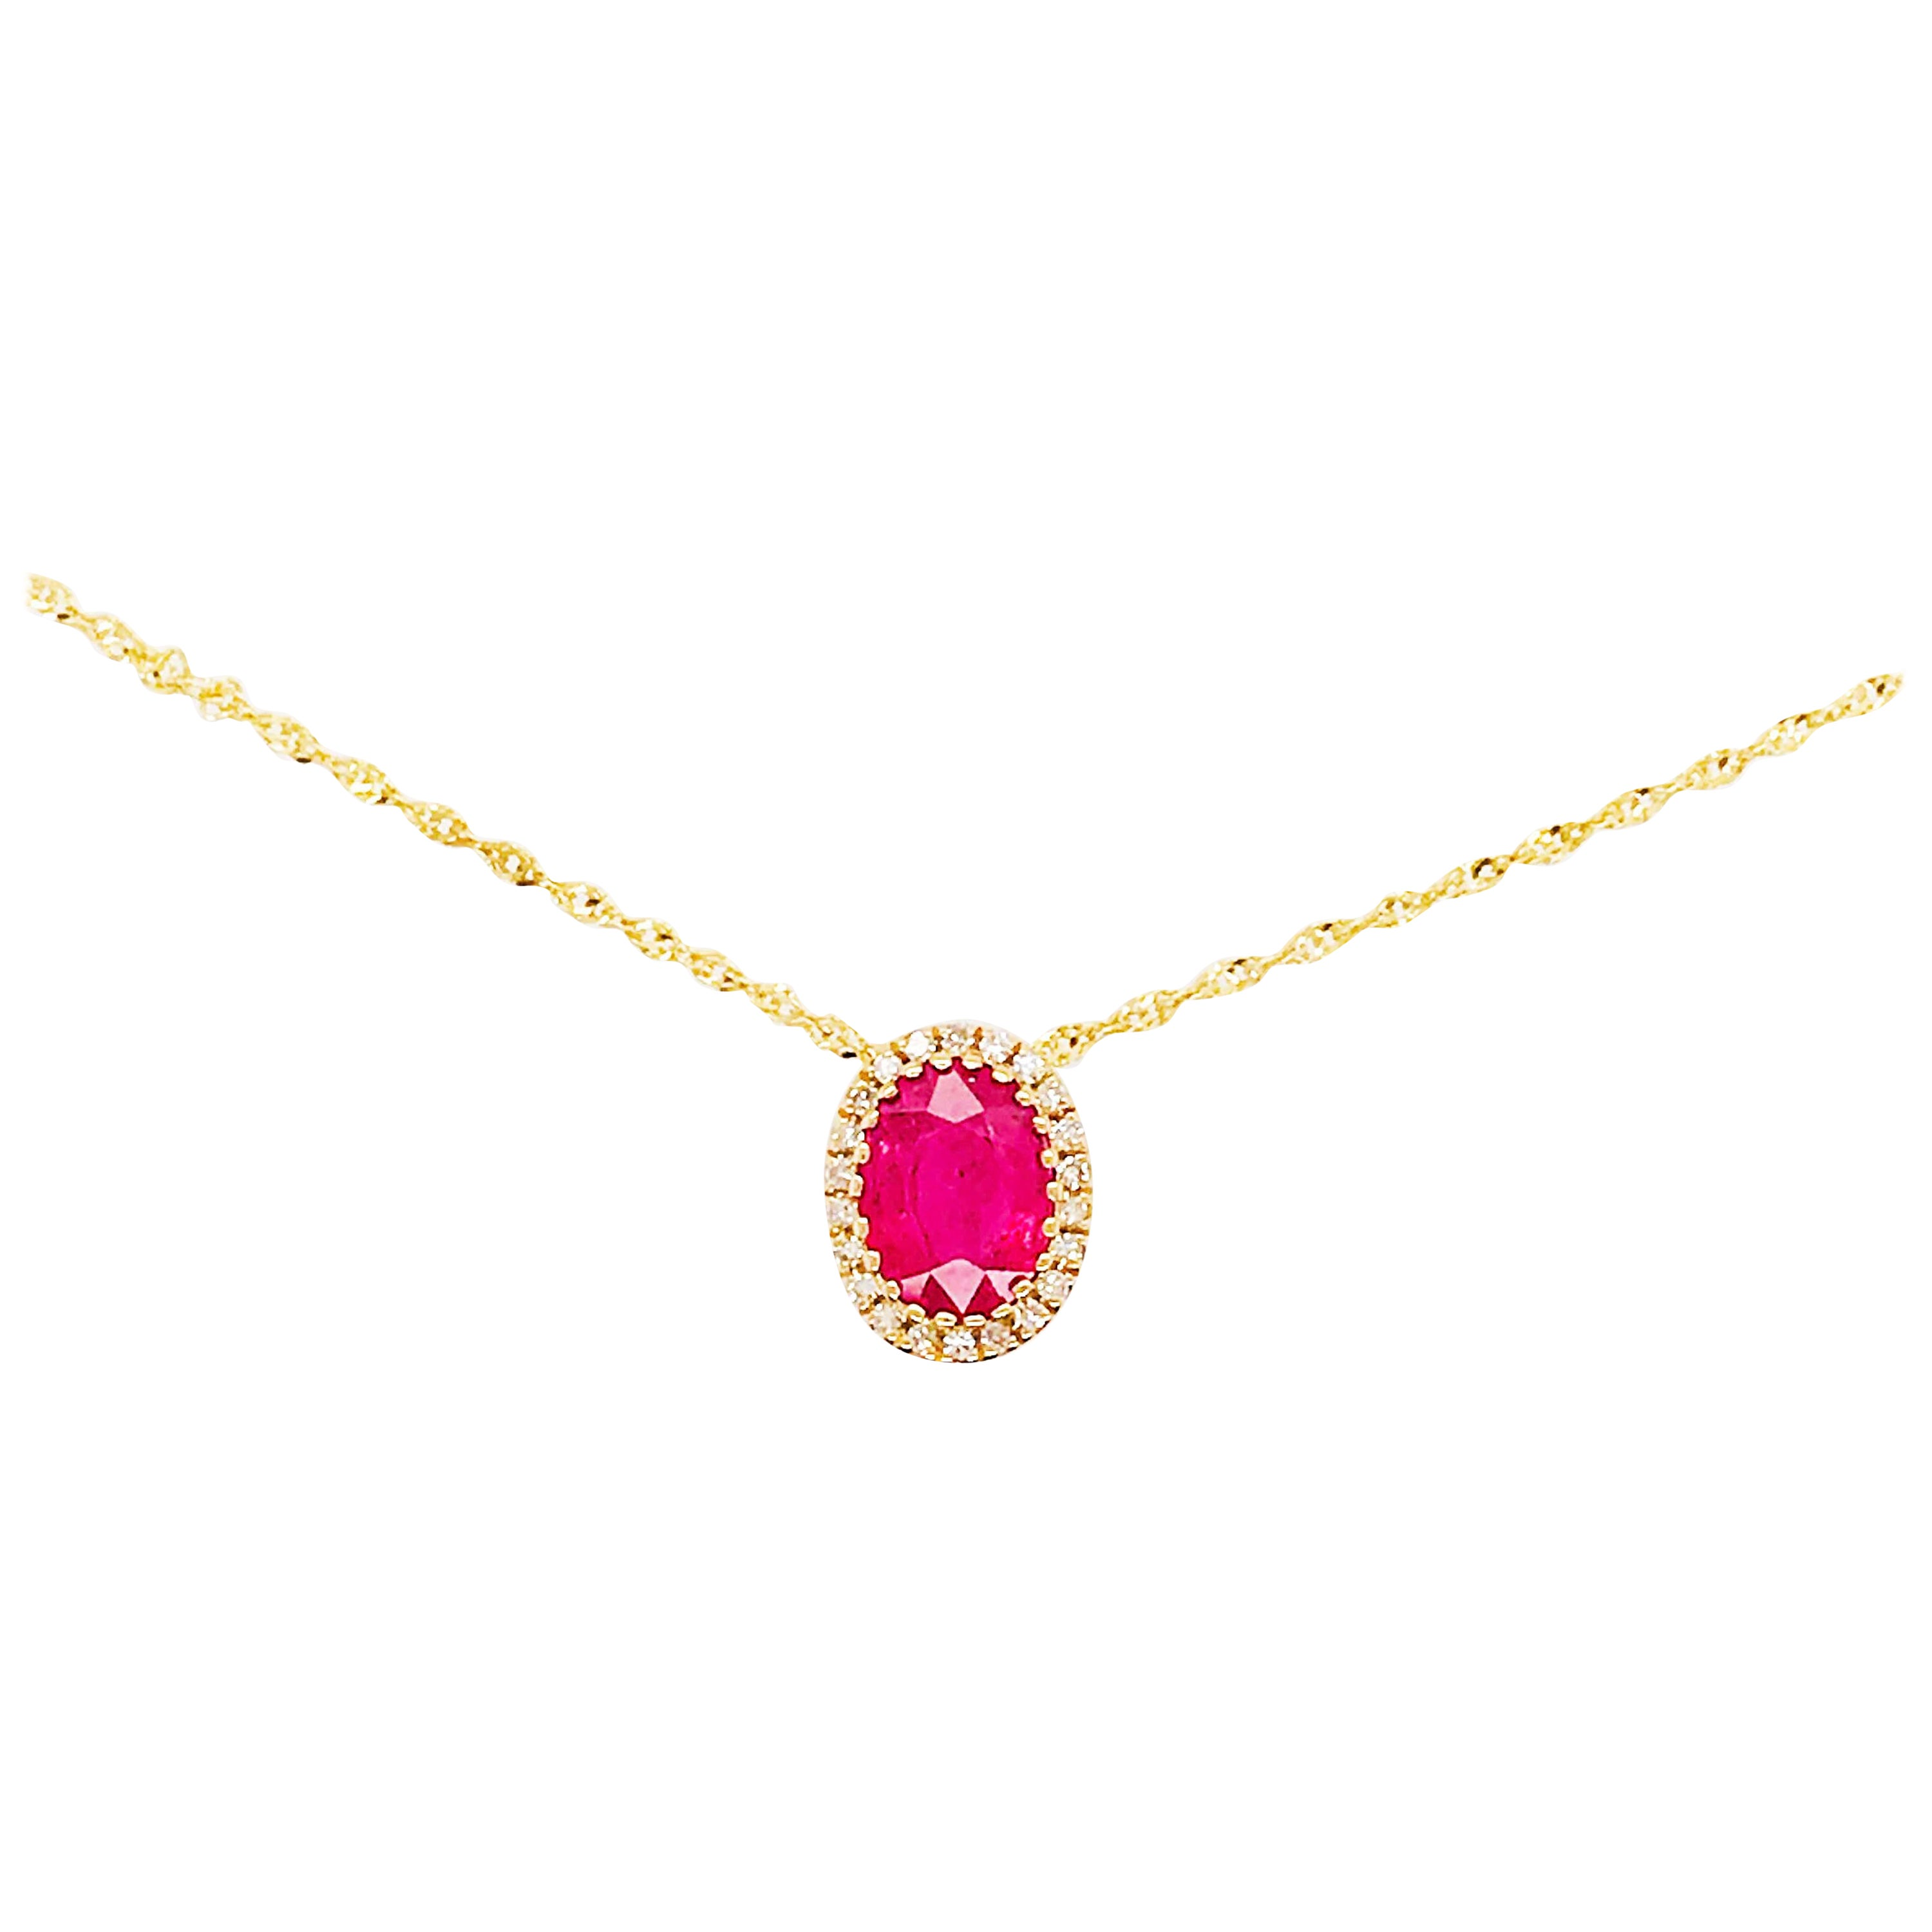 Ruby and Diamond Halo Pendant and Chain in 14 Karat Gold, Ruby July Necklace